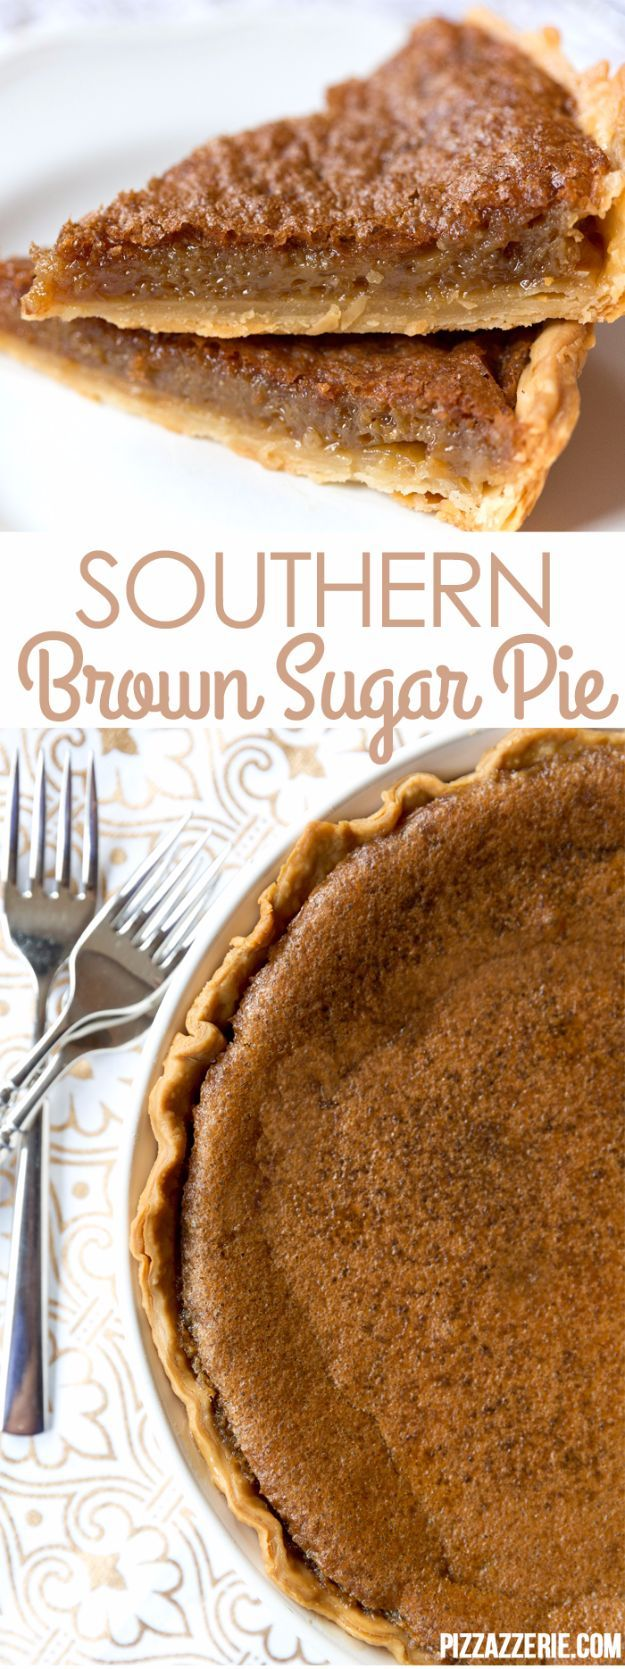 Best Country Cooking Recipes - Southern Brown Sugar Pie - Easy Recipes for Country Food Like Chicken Fried Steak, Fried Green Tomatoes, Southern Gravy, Breads and Biscuits, Casseroles and More - Breakfast, Lunch and Dinner Recipe Ideas for Families and Feeding A Crowd - Step by Step Instructions for Making Homestyle Dips, Snacks, Desserts http://diyjoy.com/country-cooking-recipes